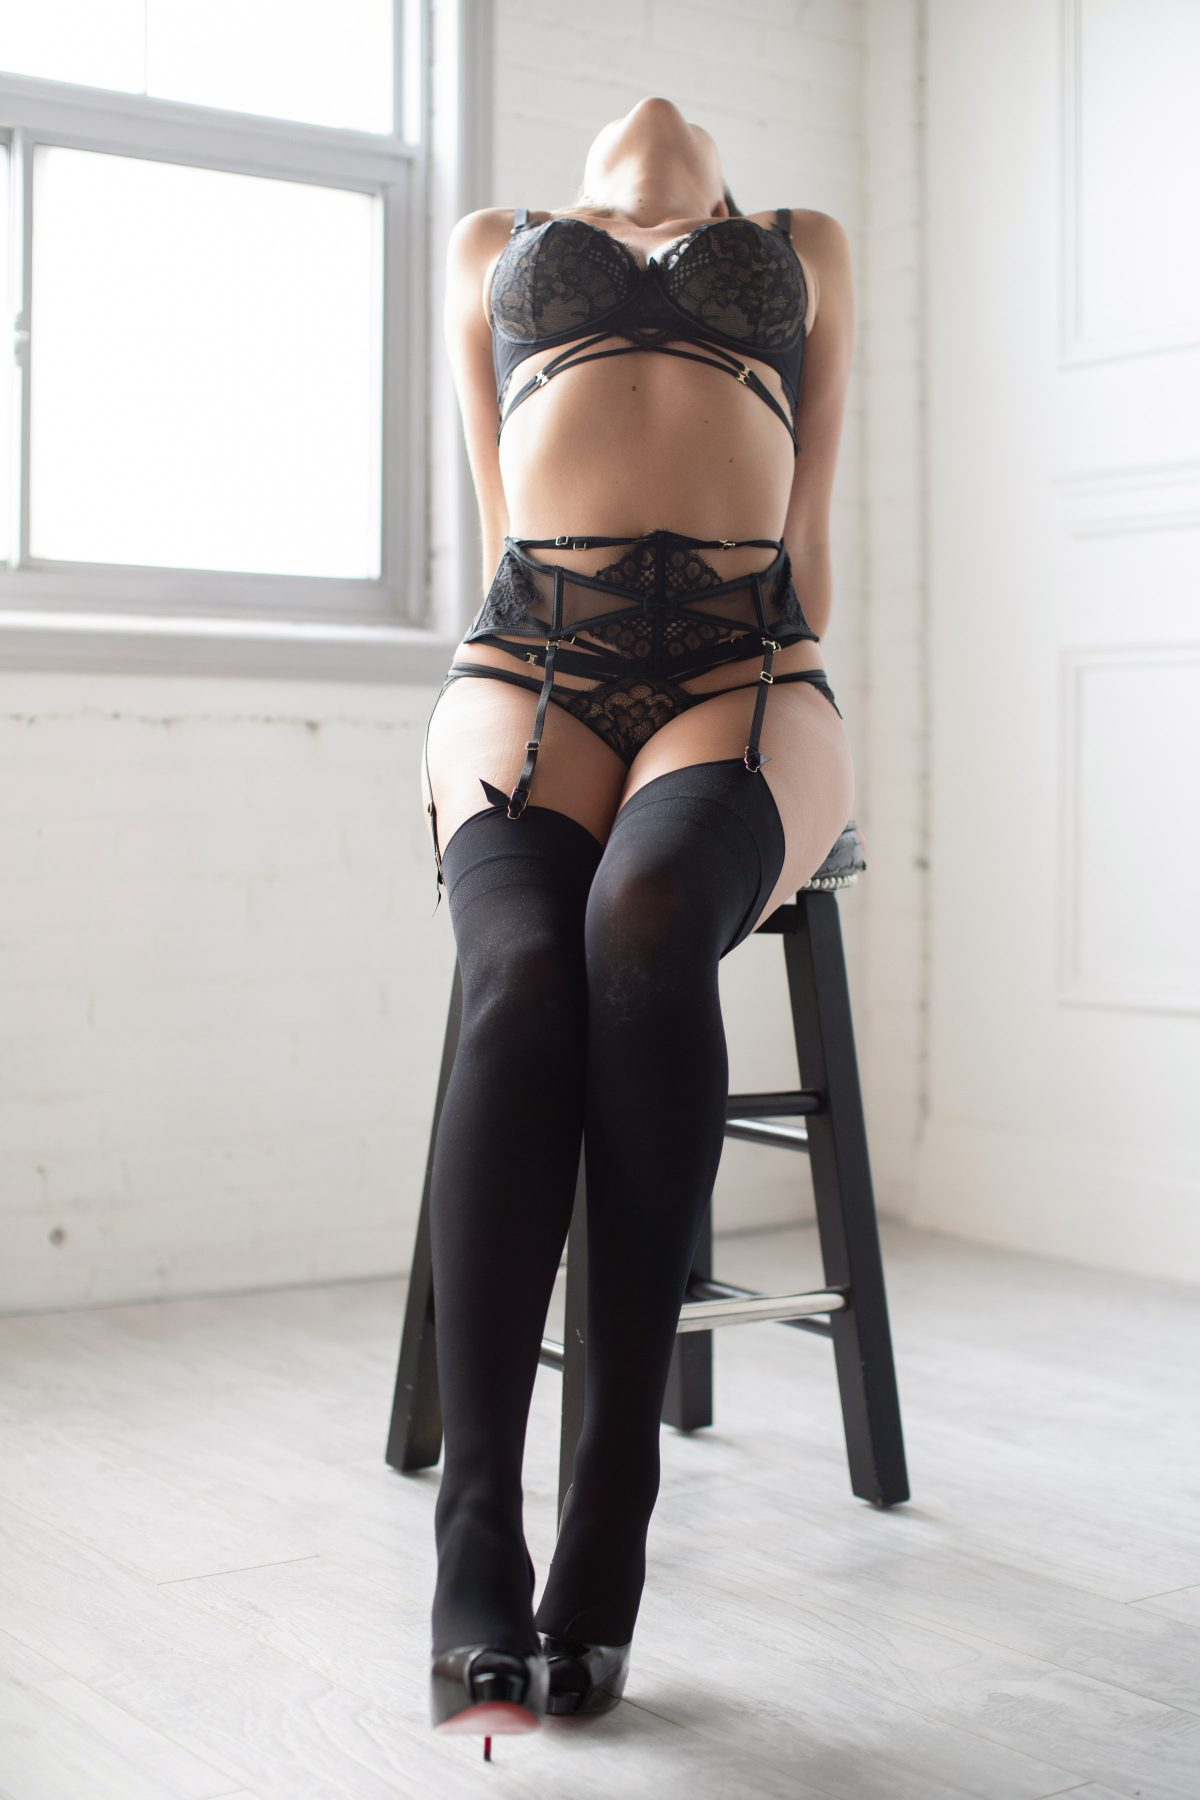 Toronto escorts companion upscale Jocelyn Interests Duo Couple-friendly Non-smoking Age Mature Figure Slender Tall Breasts Natural Hair Blonde Ethnicity European Tattoos Small Arrival